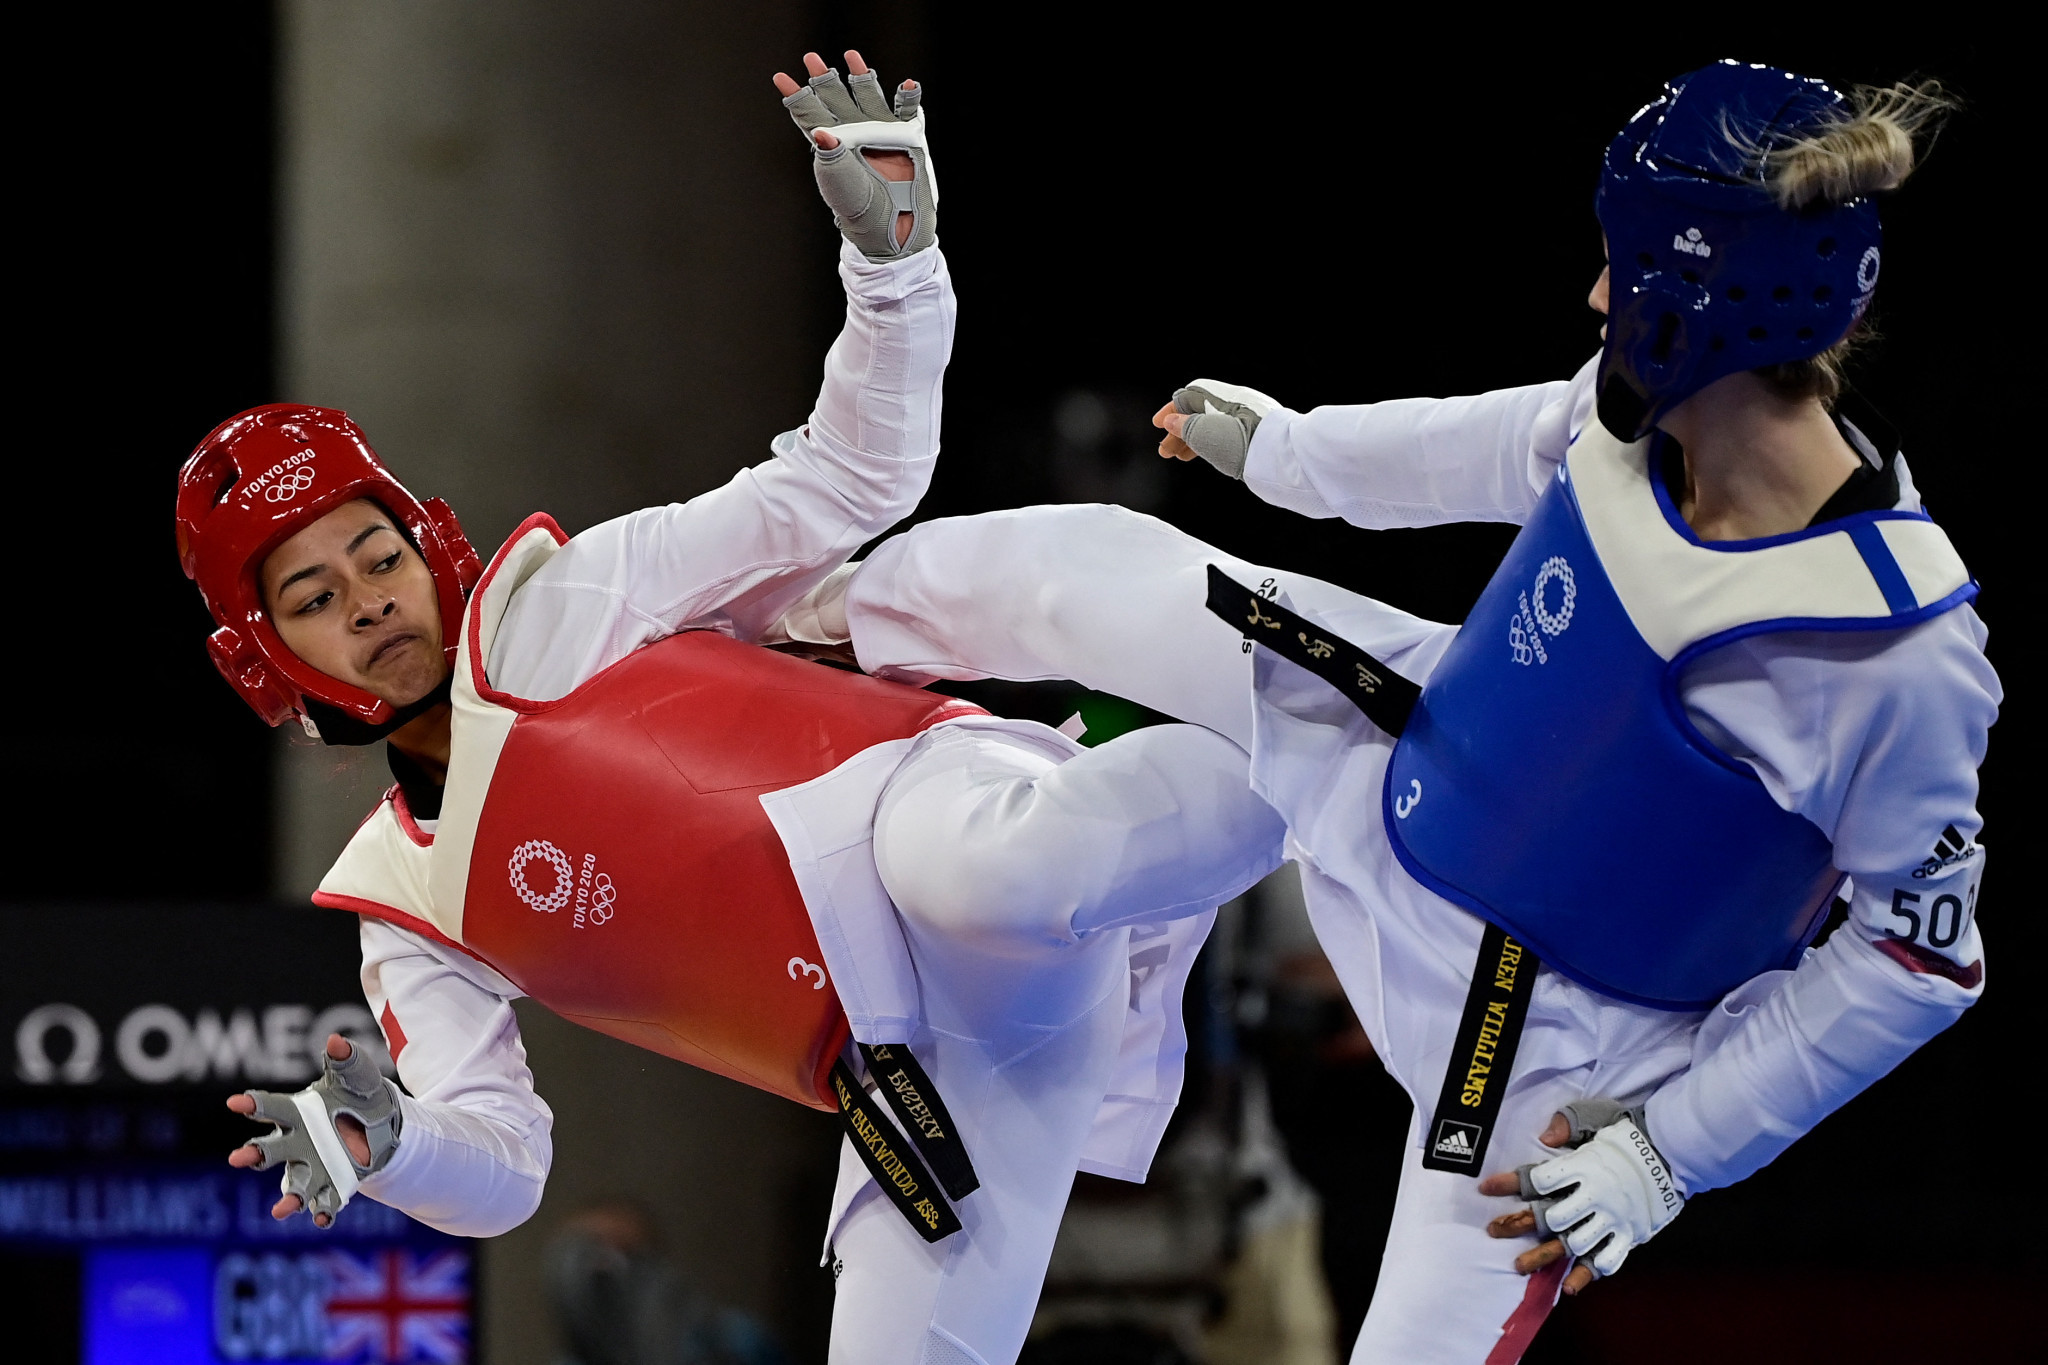 Taekwondo players from Tonga, New Zealand and Australia competed at the Tokyo 2020 Olympics  ©Getty Images